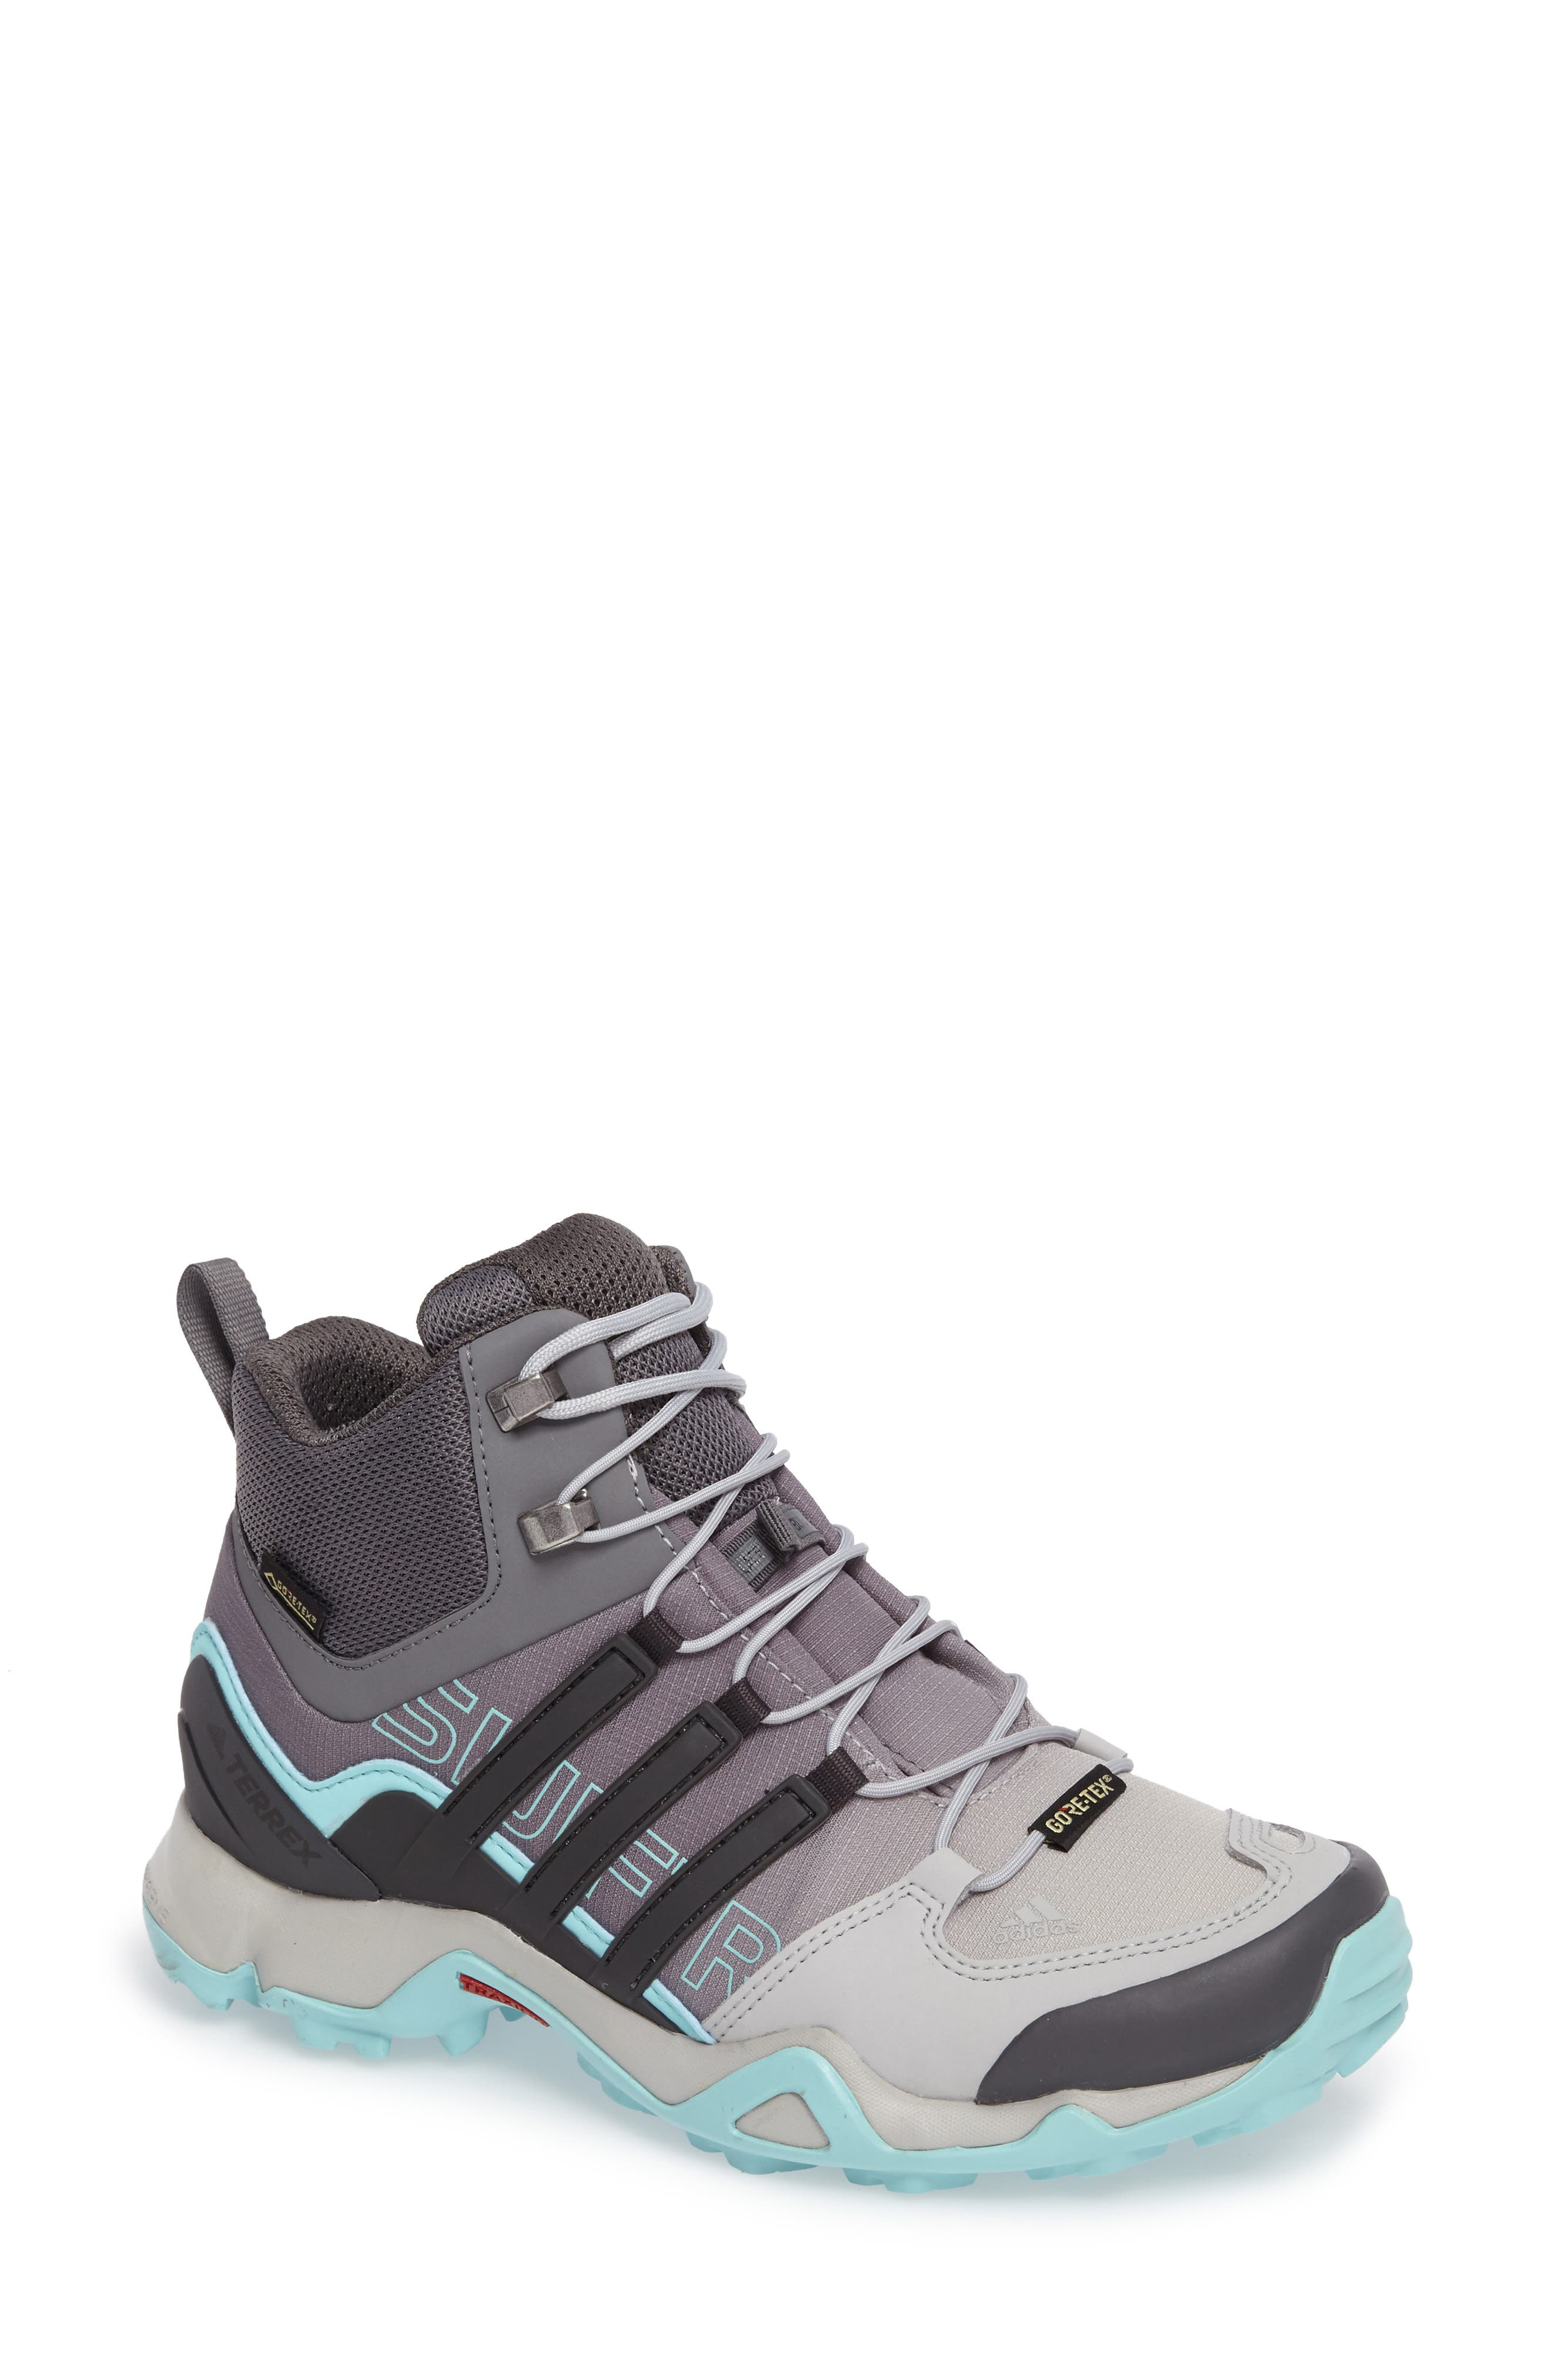 Alternate Image 1 Selected - adidas Terrex Swift R GTX Mid Hiking Boot (Women)